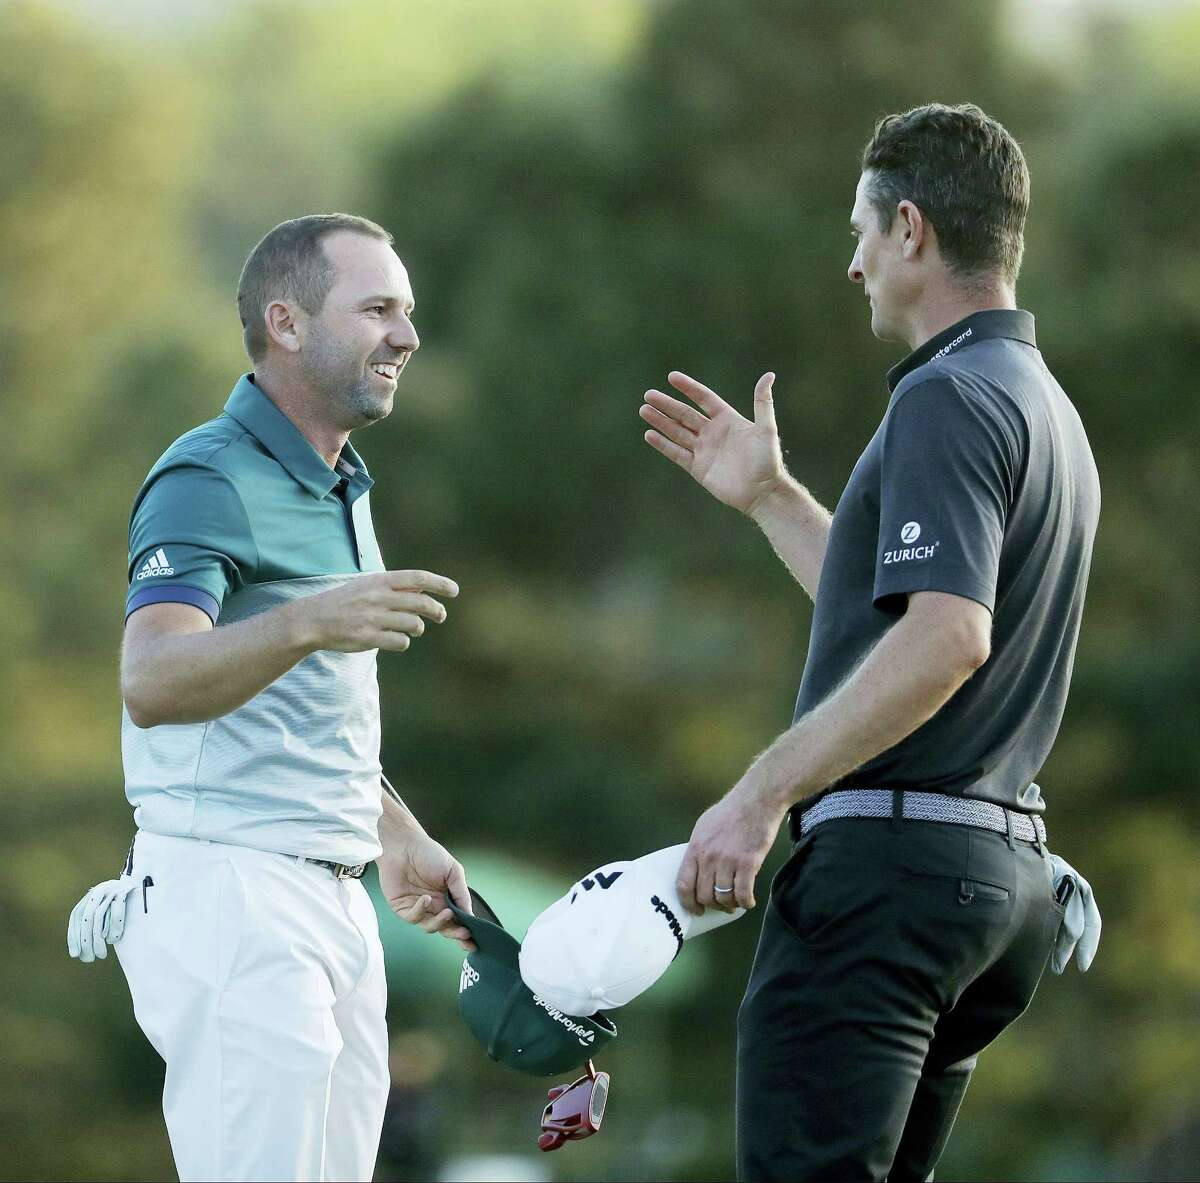 Sergio Garcia, of Spain, talks to Justin Rose, of England, after making his birdie putt on the 18th green to win the Masters golf tournament after a playoff Sunday in Augusta, Ga.